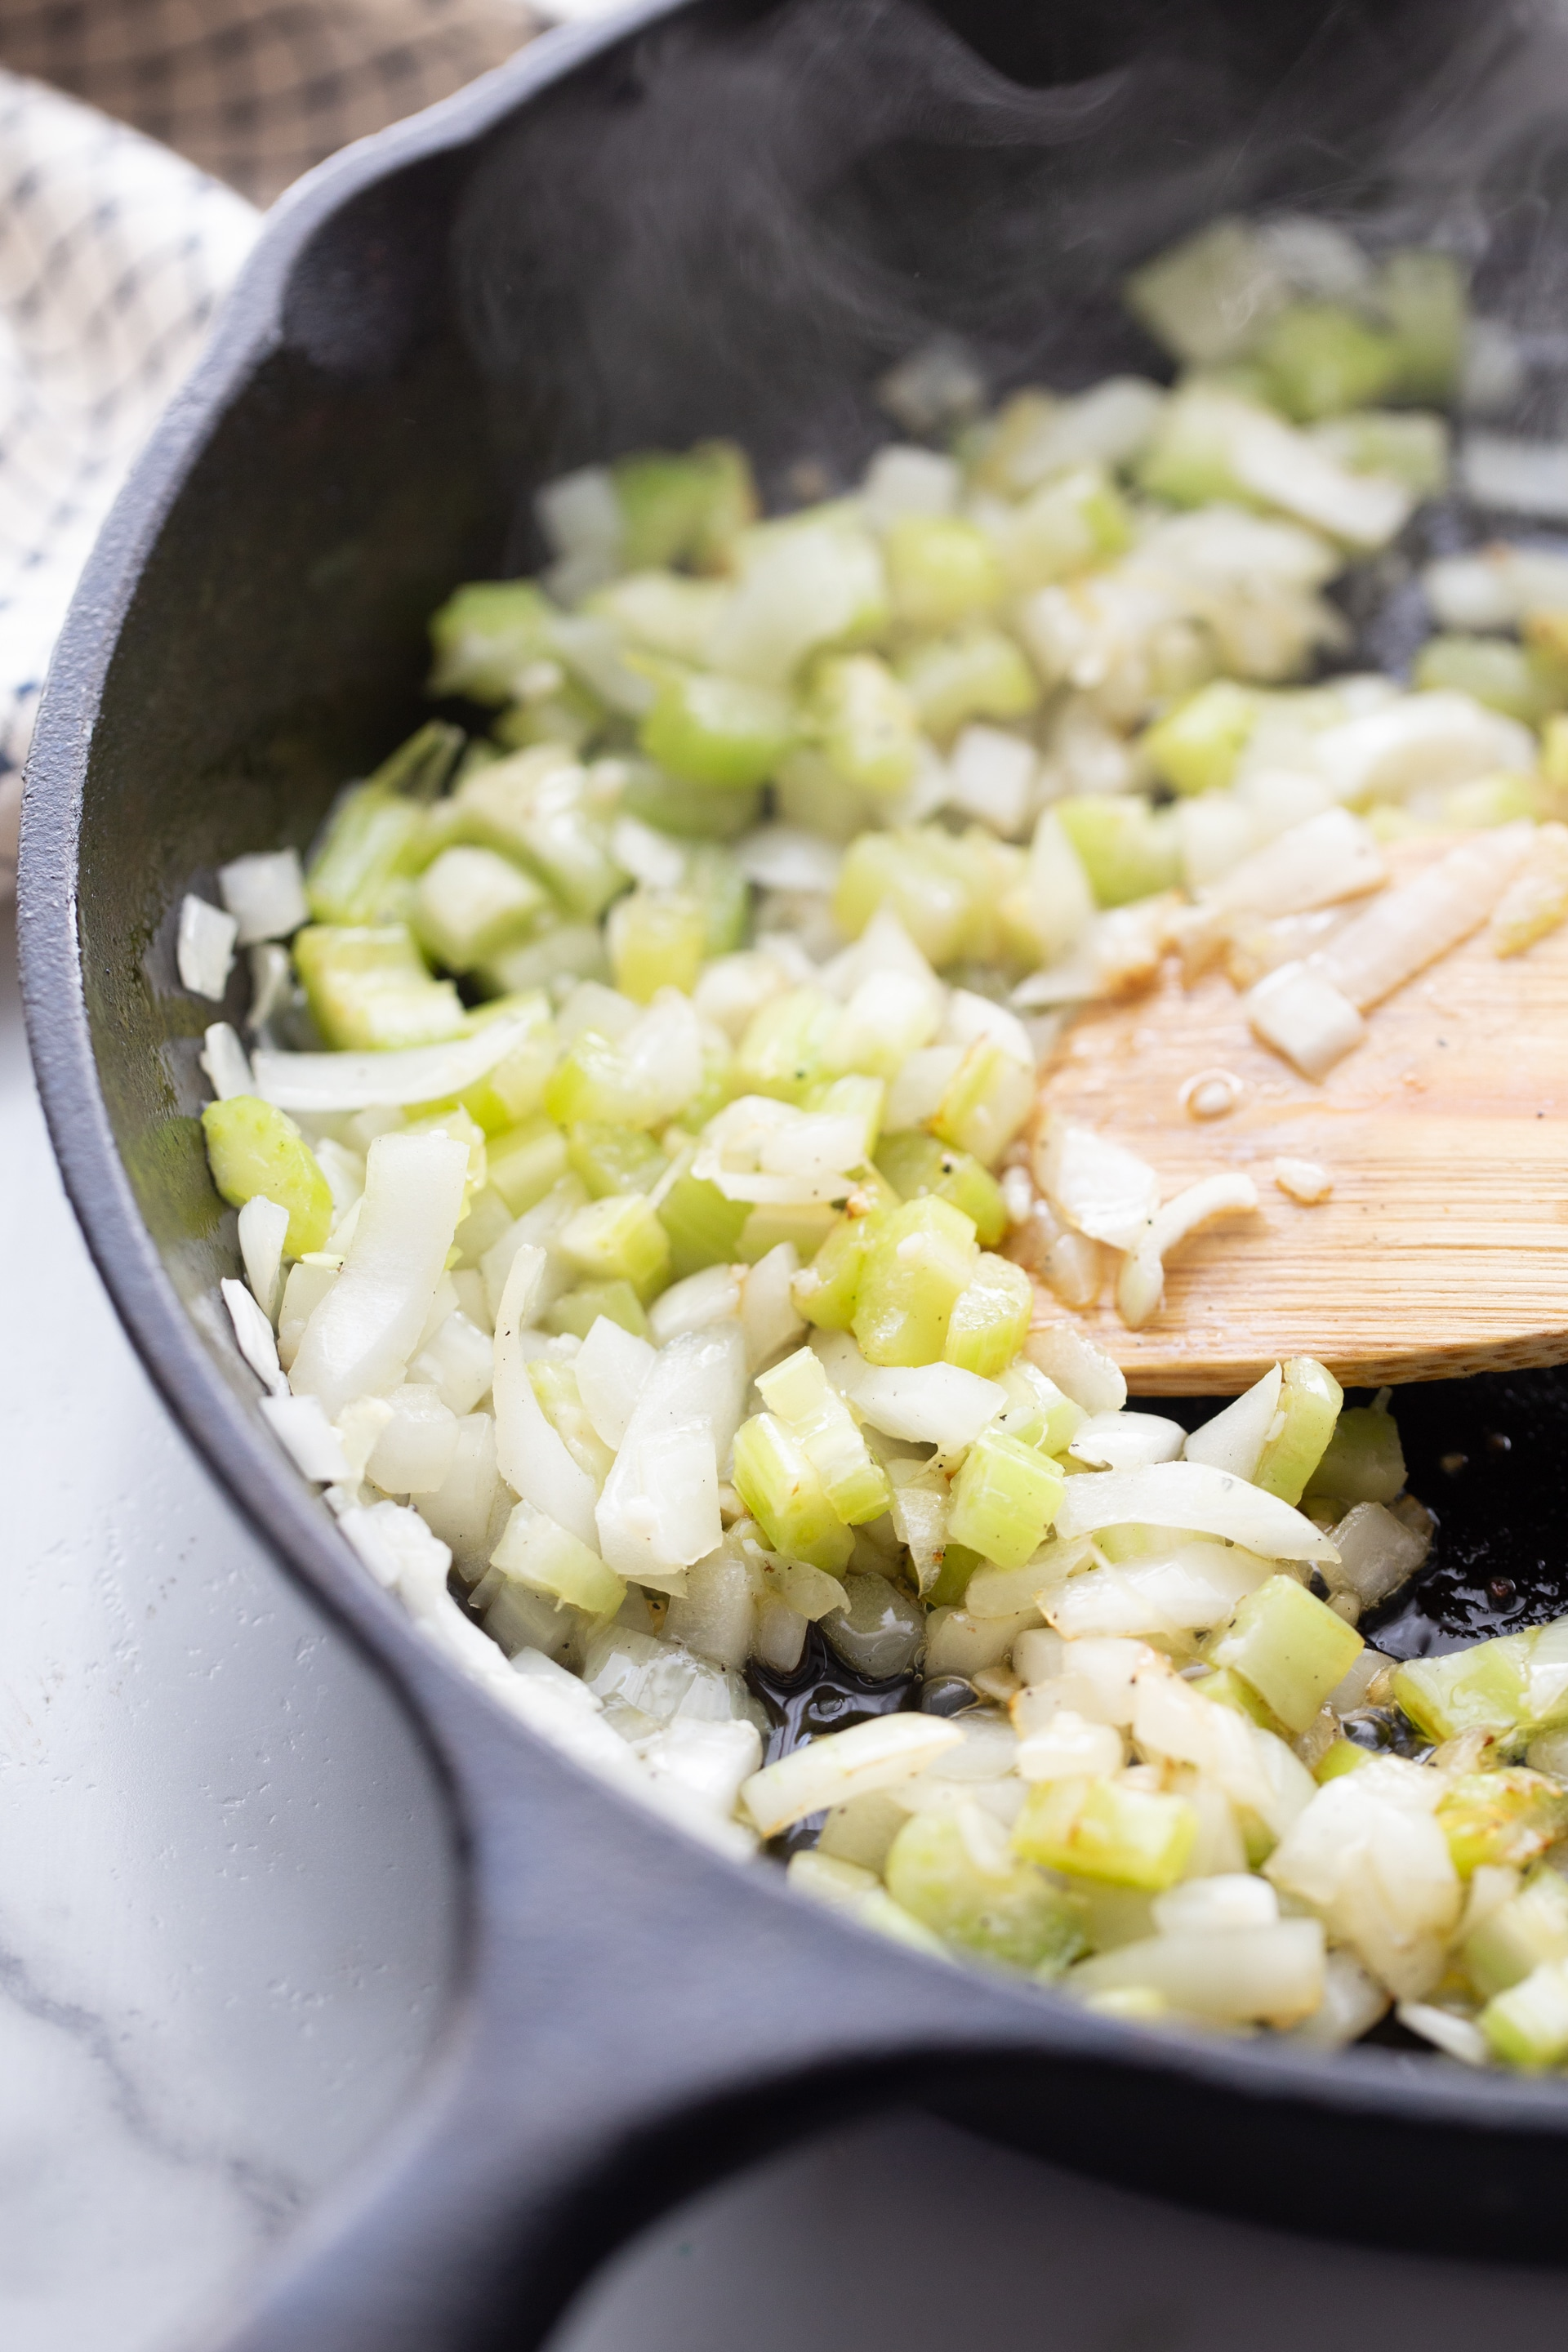 onions peppers sauteeing in a cast iron skillet